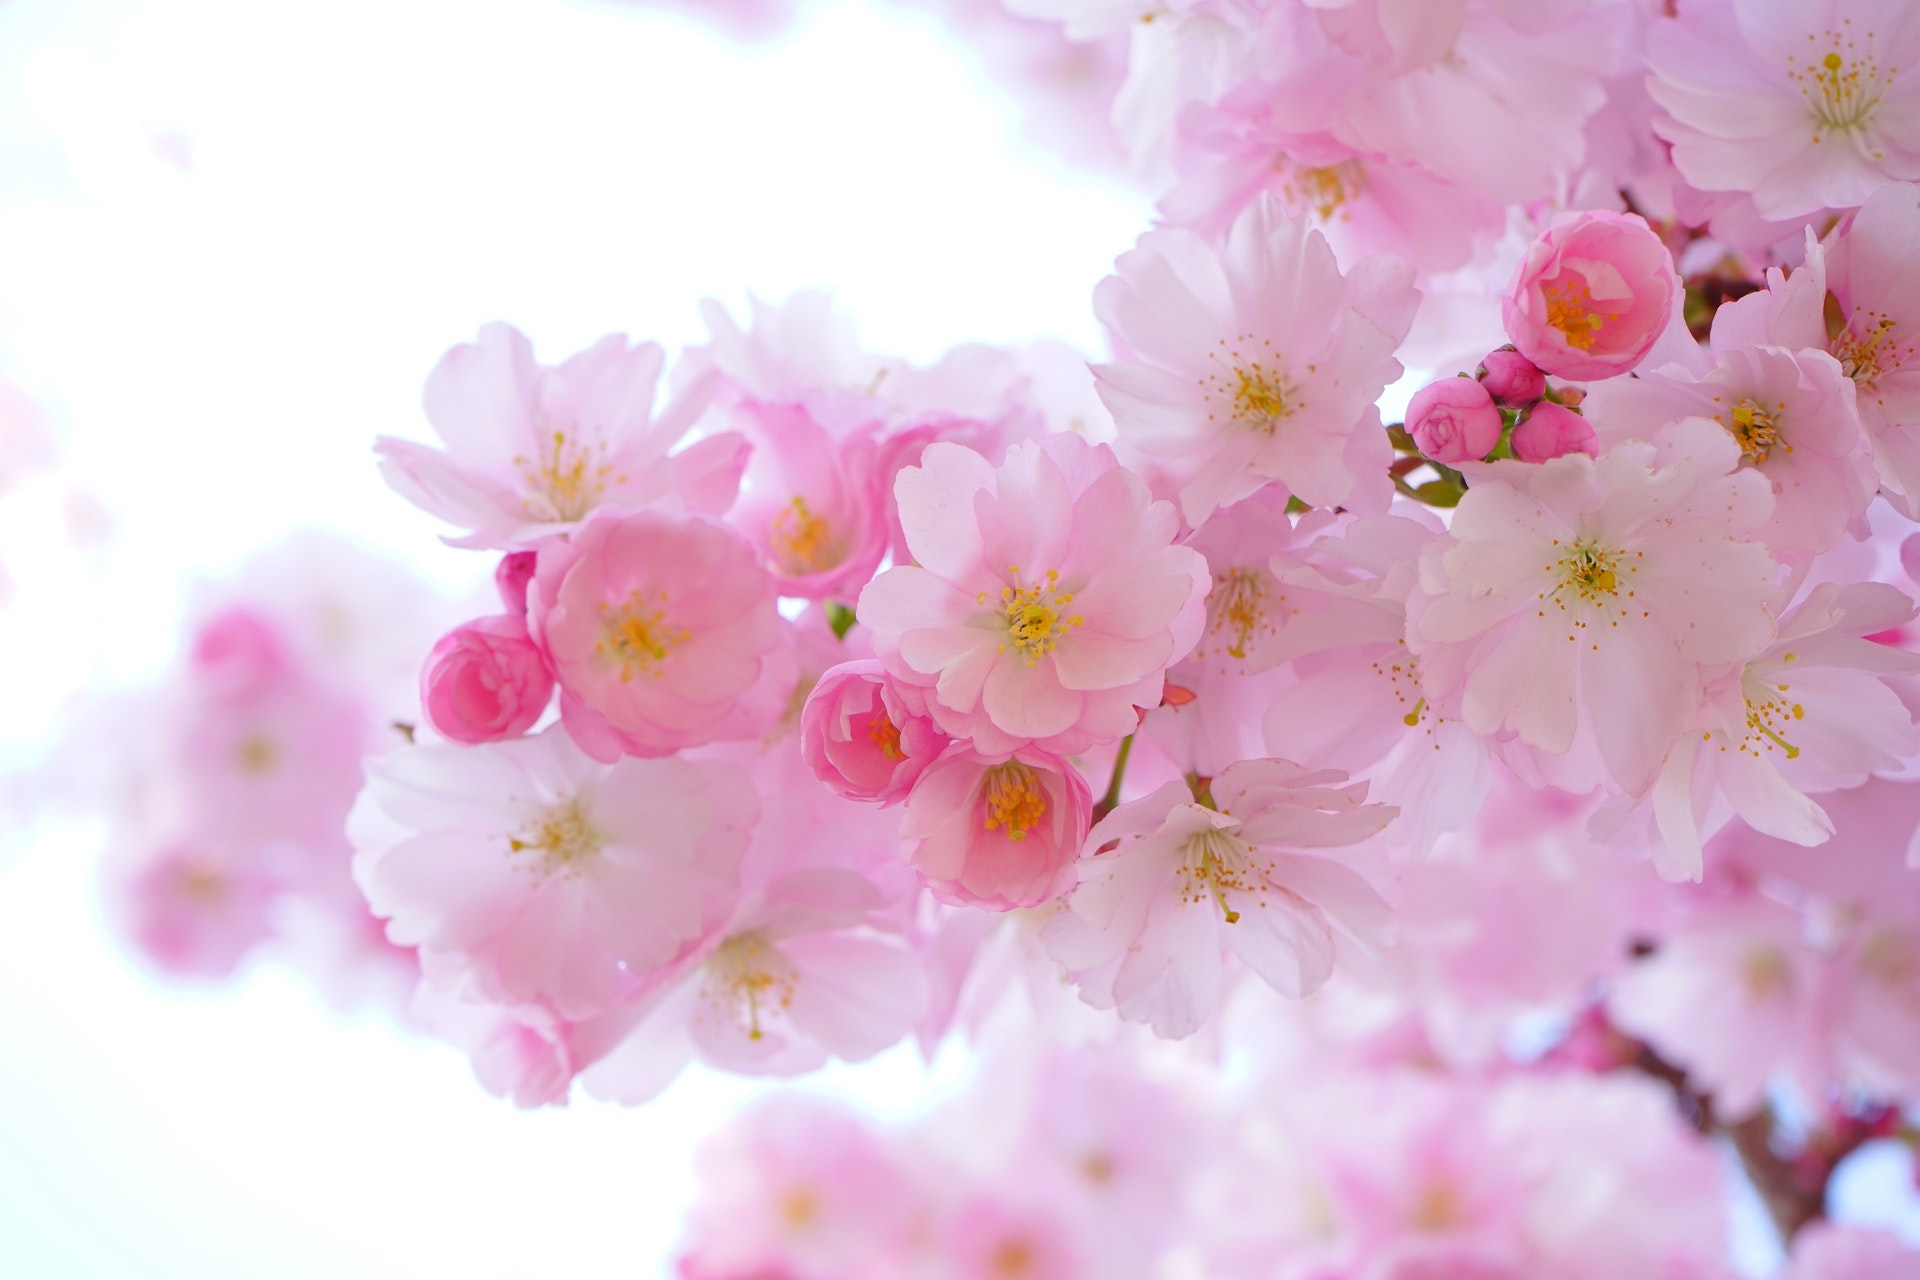 Pink cherry blossoms on a white background